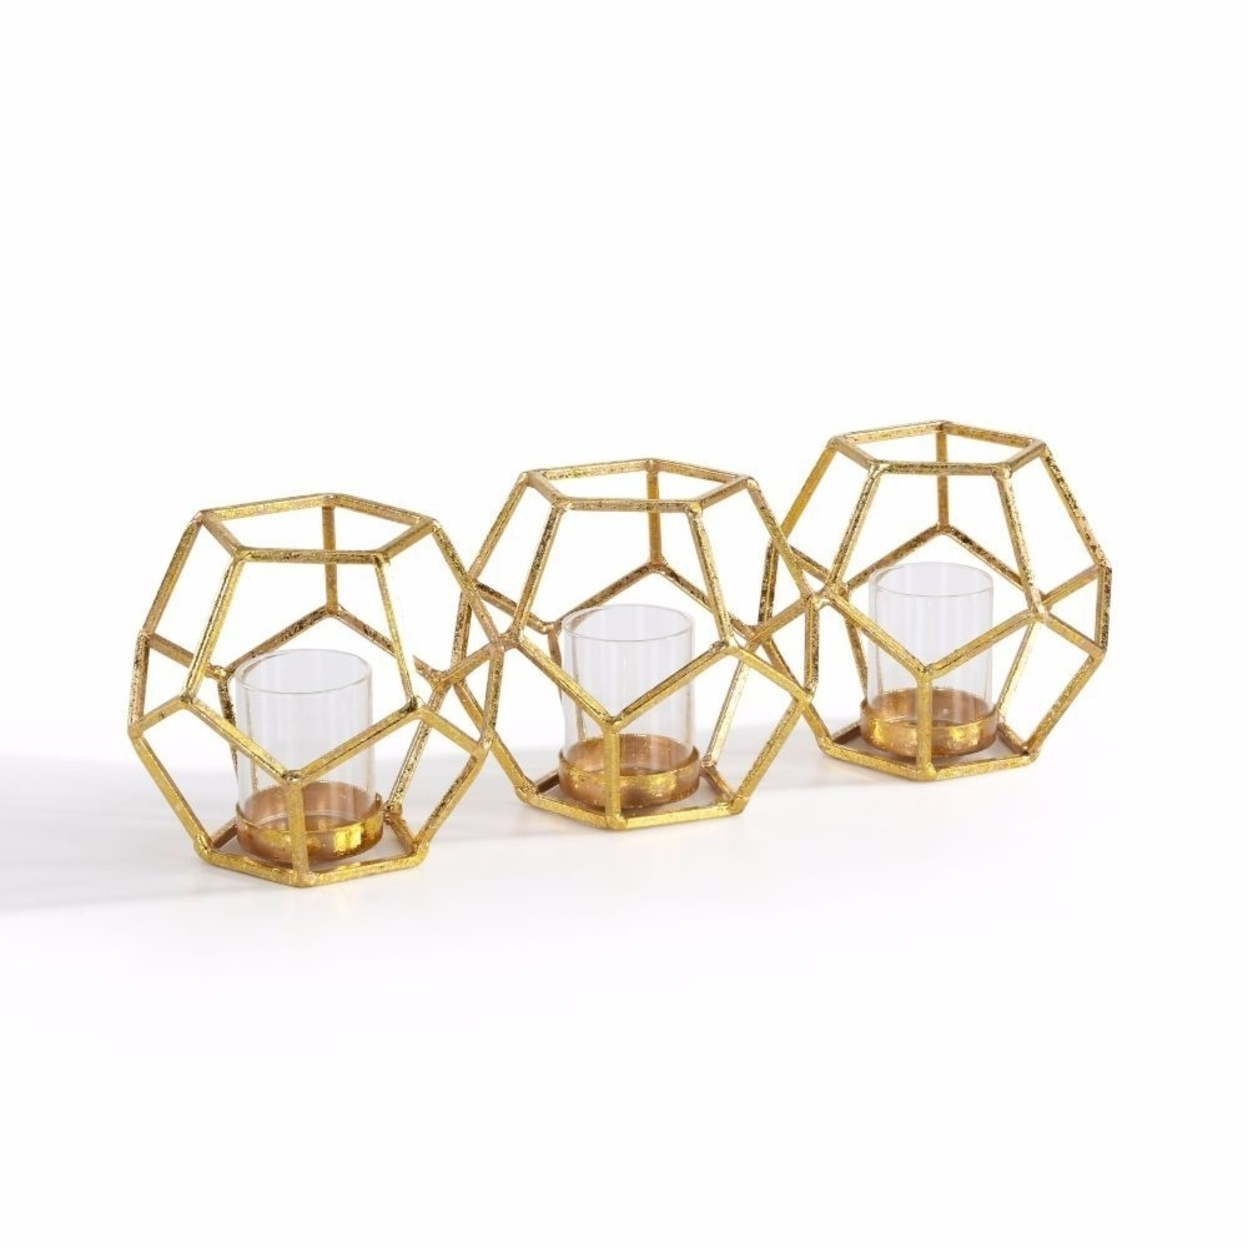 Sparkling Gold Polyhedron Triple Candle Holder 58995459c98fc433fb5891c5